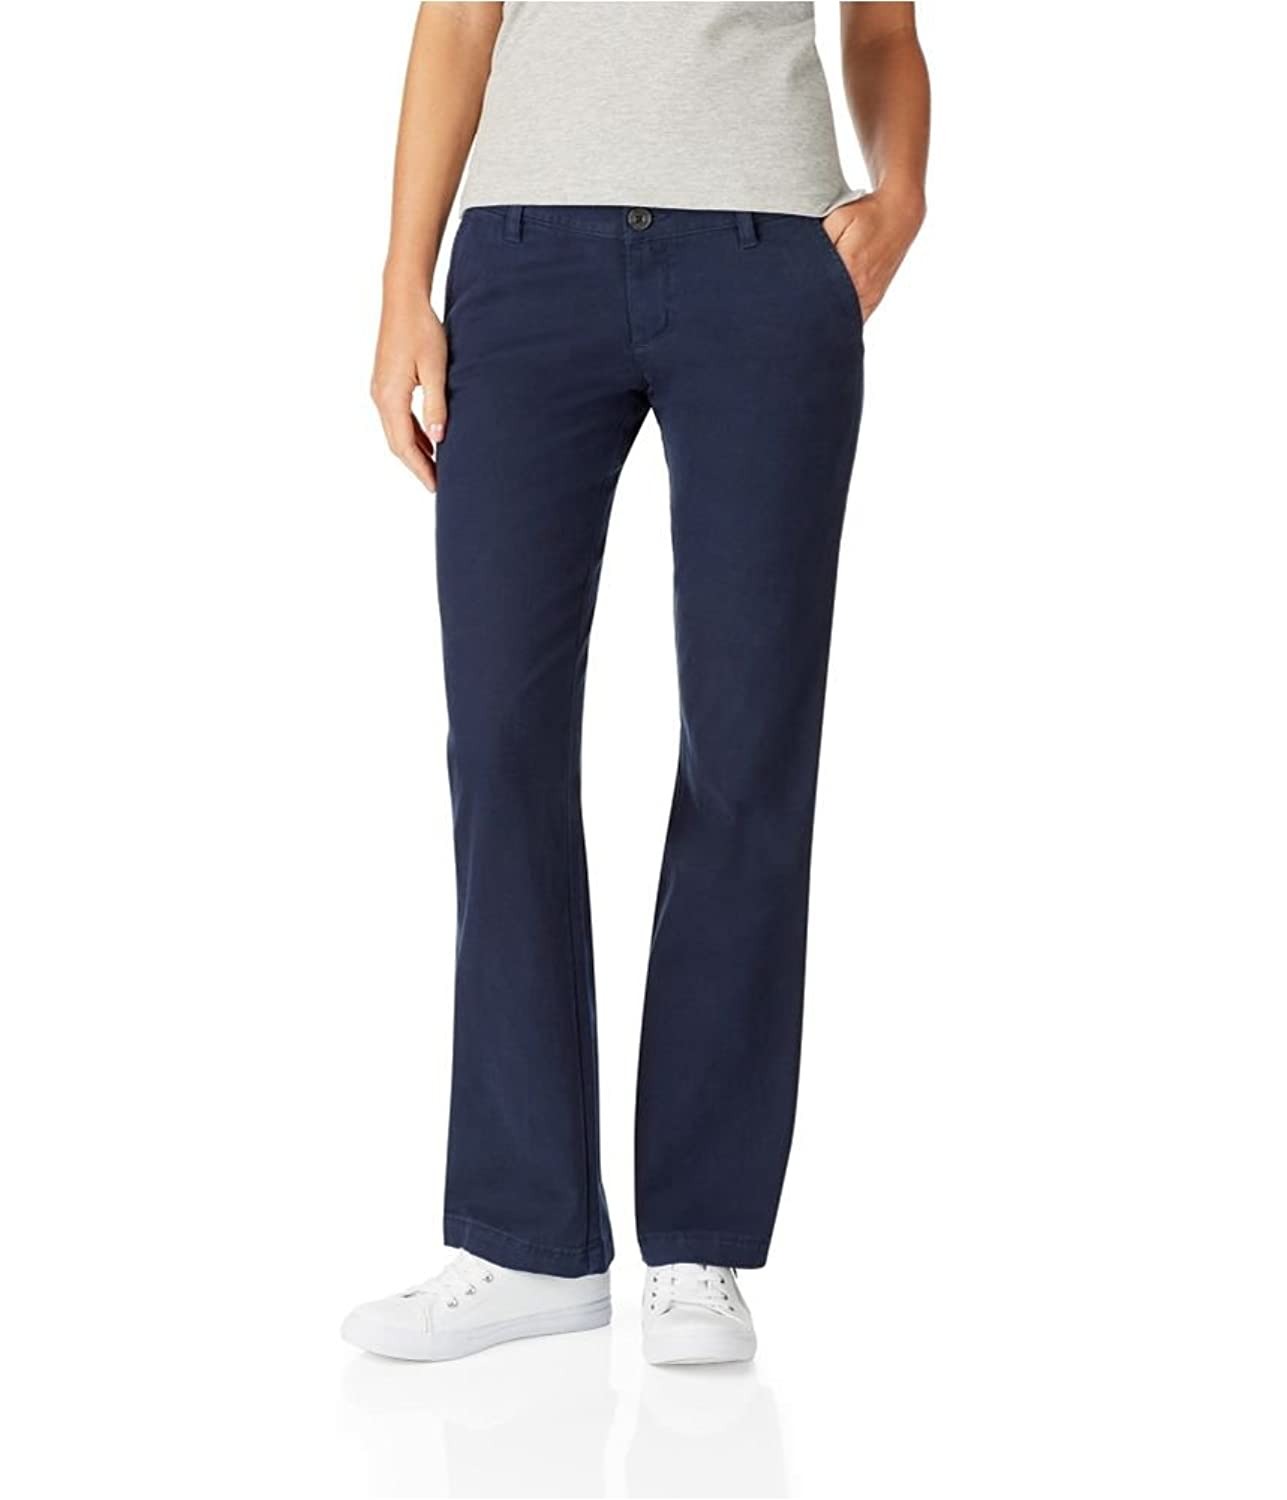 Aeropostale Womens Solid Low Rise Casual Chino Pants